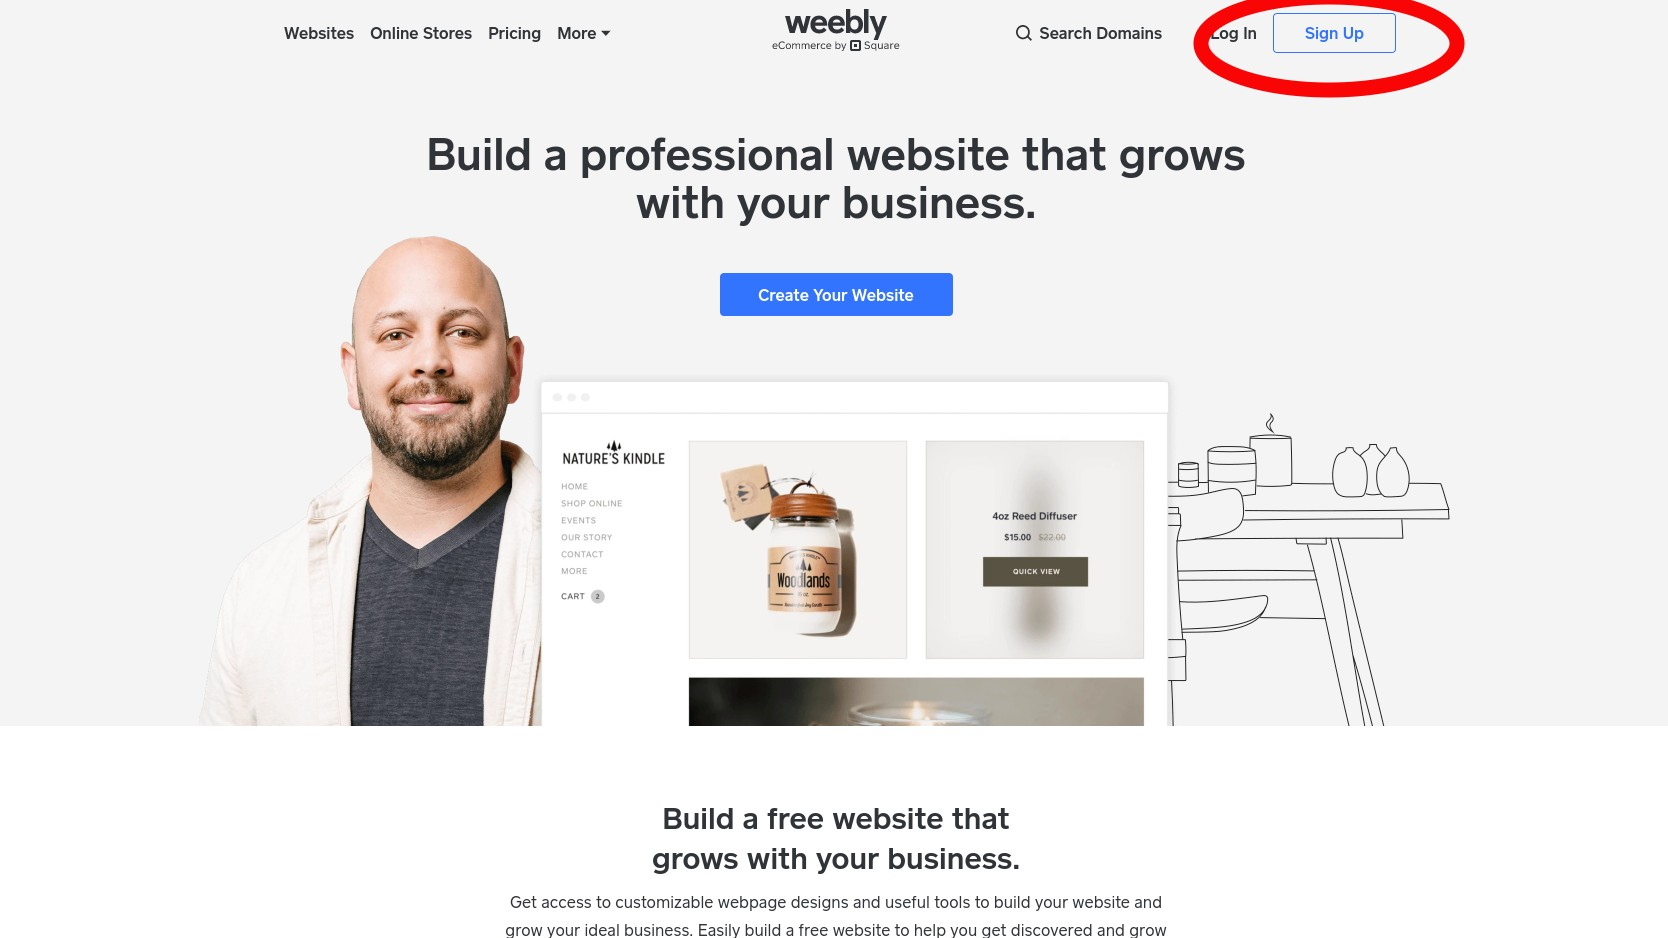 weebly homepage signup button